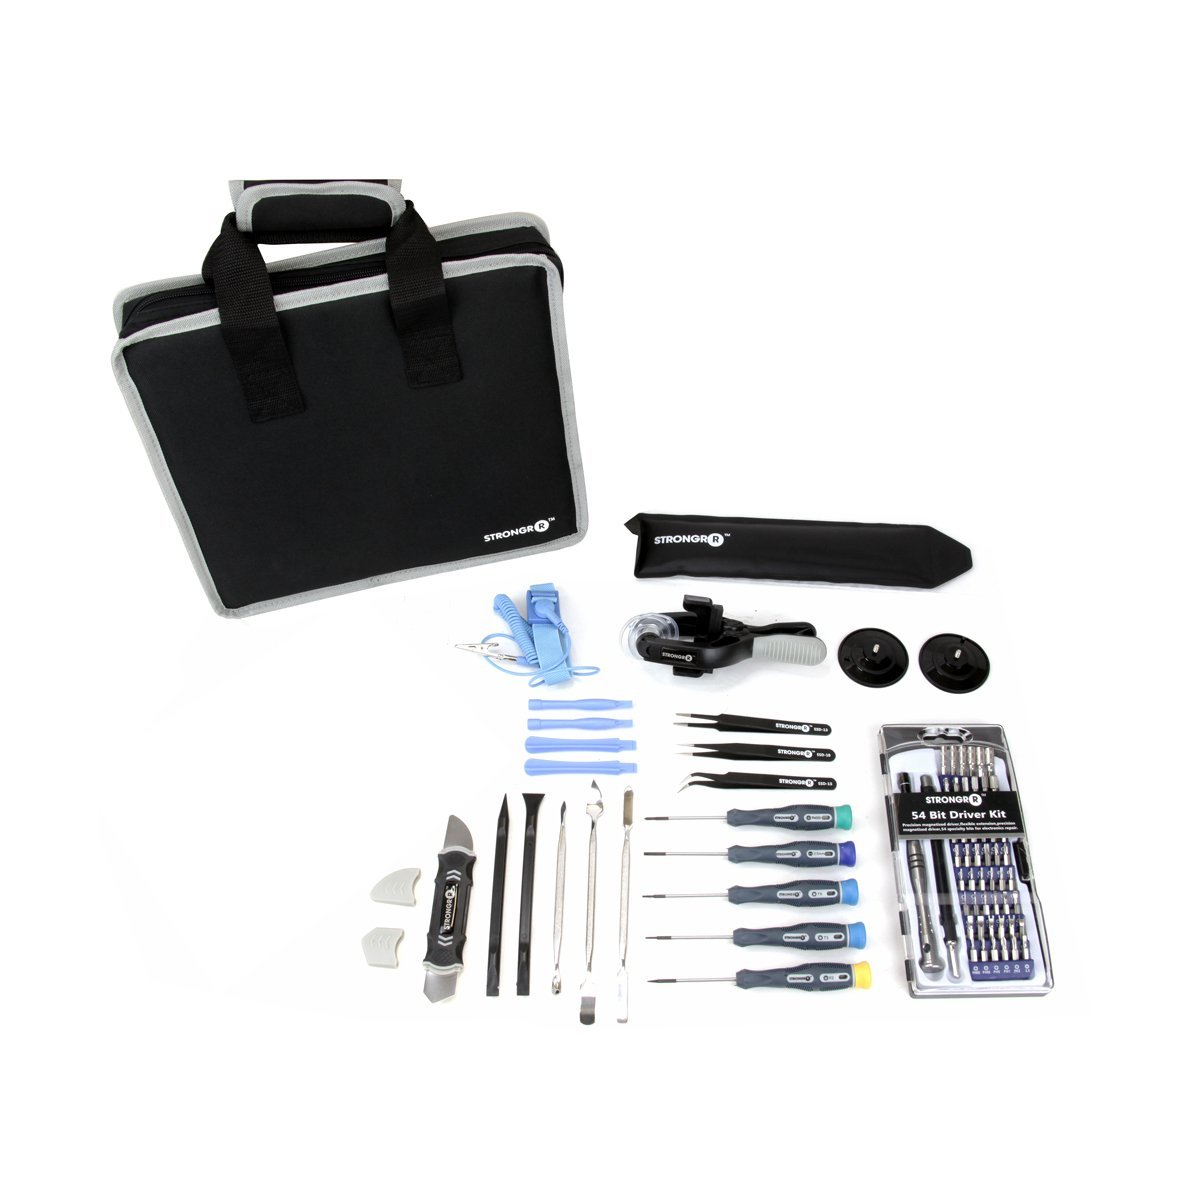 "LB1 High Performance Electronics Complete Professional Precision Disassembly Tool Kit for Repairing HP 15.5"" EliteBook Notebook 4 GB Memory 160 GB Hard Drive Gray HP8530pBC5-0053 Repair Hand Tool Set"